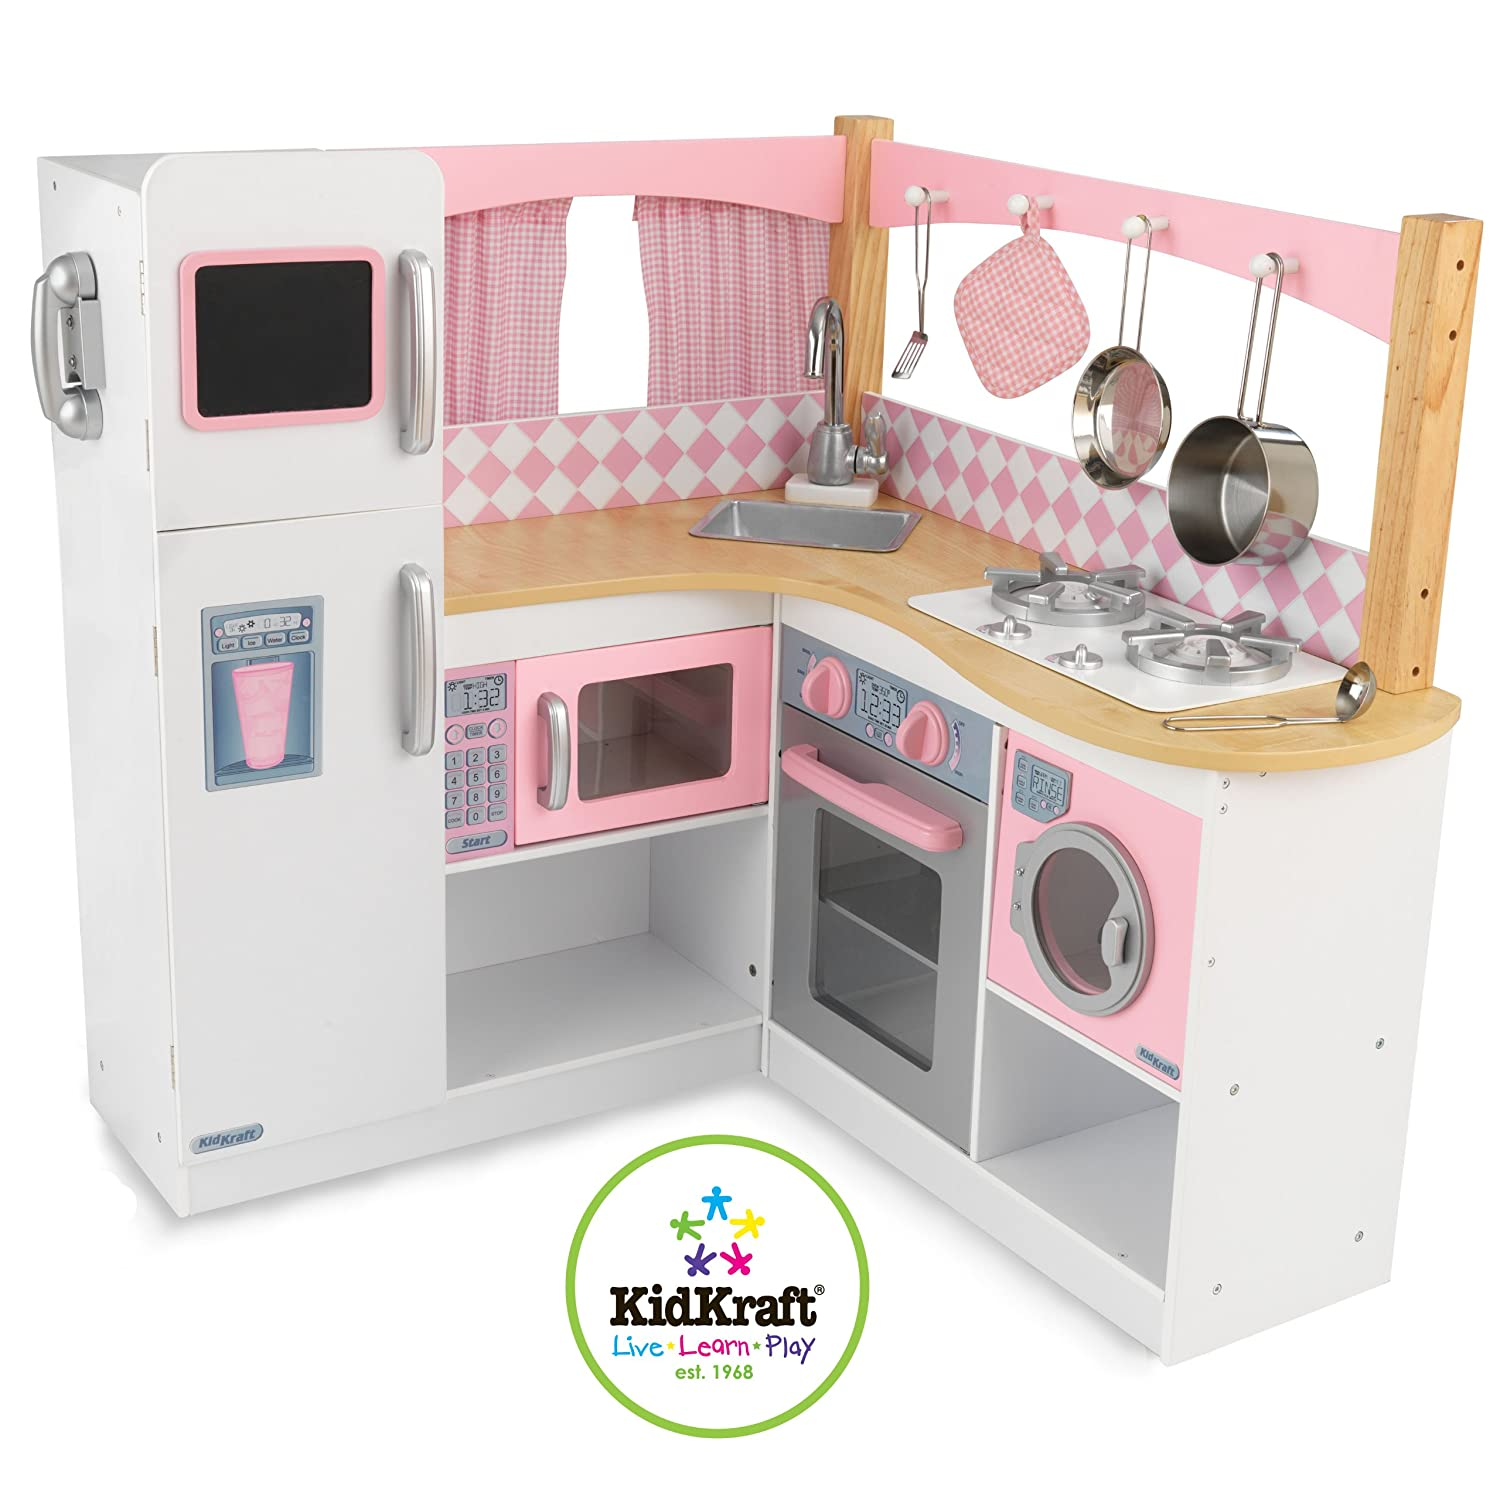 Wooden kitchen playset kids kitchen playsets wood for Kitchen set wooden